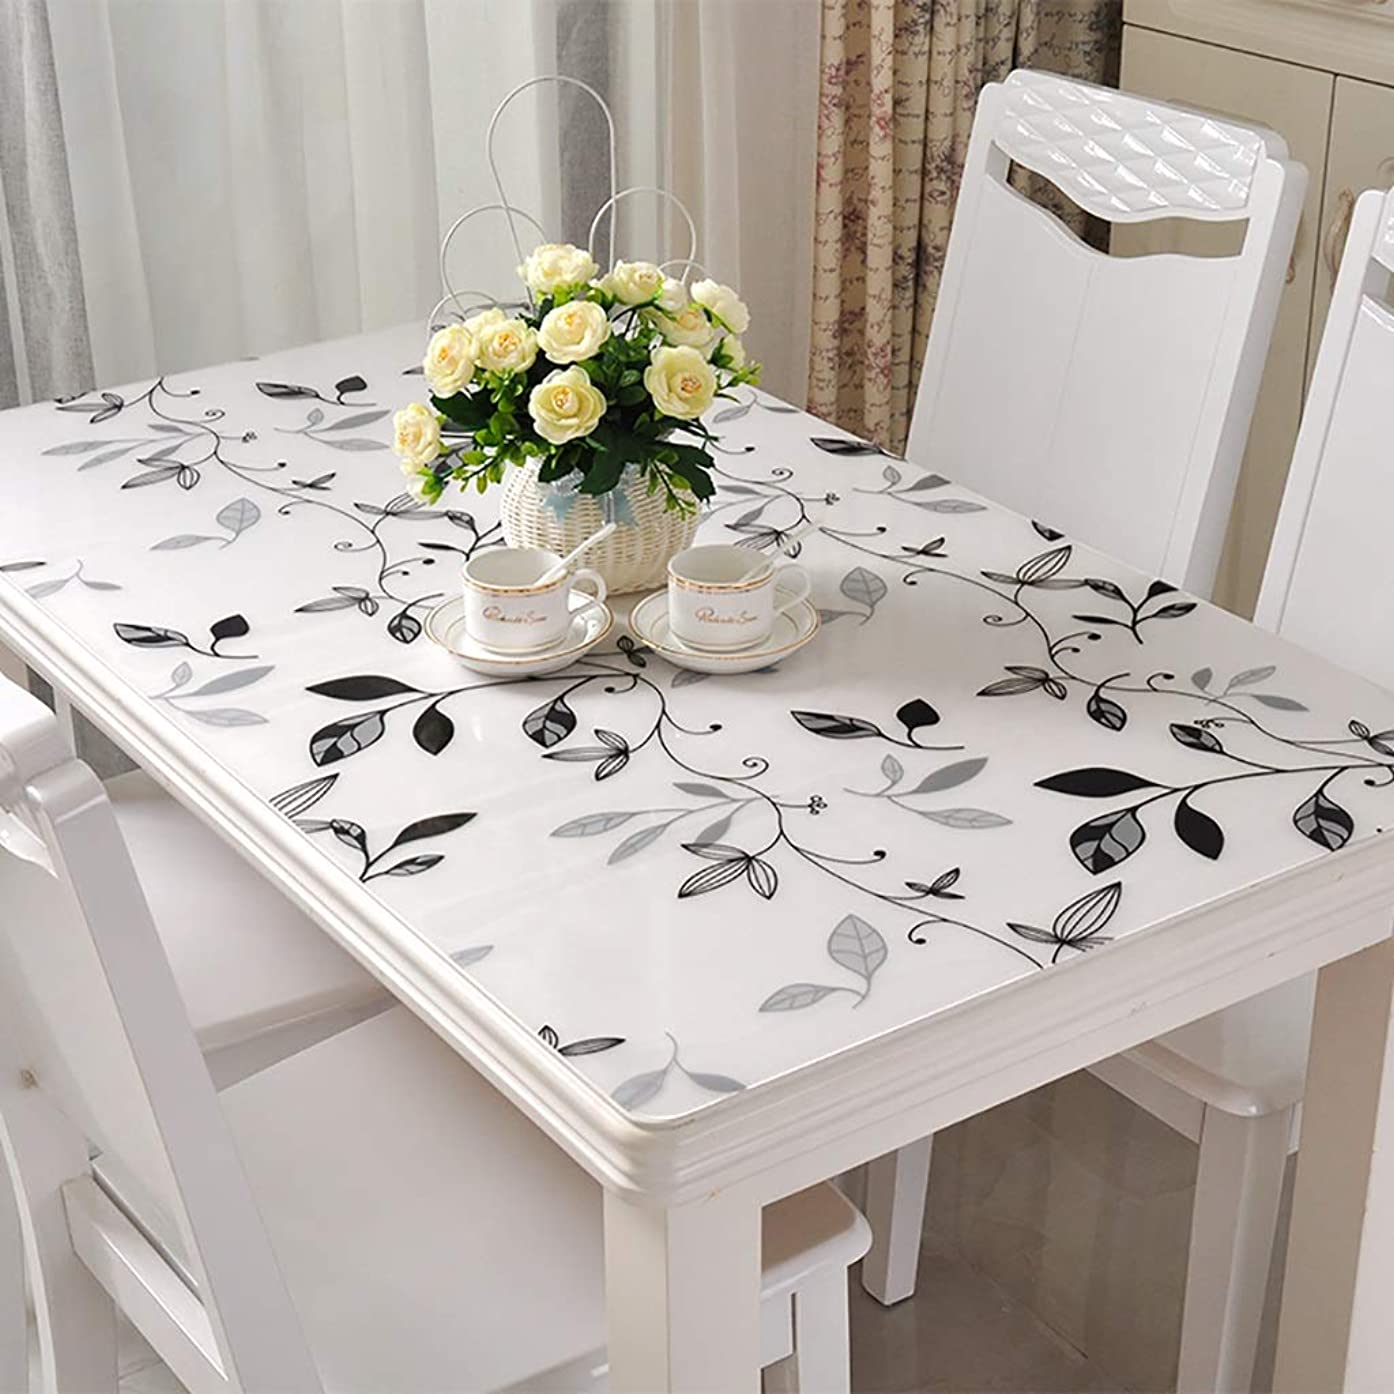 GFZB1201 Tablecloths PVC Waterproof Tablecloth, Anti-scalding Soft Glass Plastic Transparent Frosted Crystal Plate Table Cloth for Coffee Table Dining Table (Color : H, Size : 60120CM)